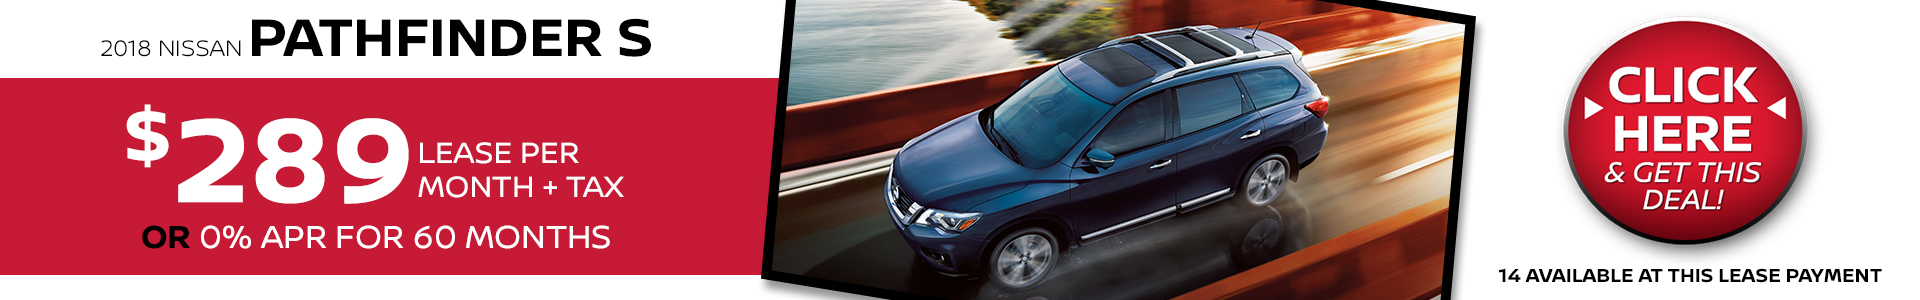 Mossy Nissan - Pathfinder $289 Lease